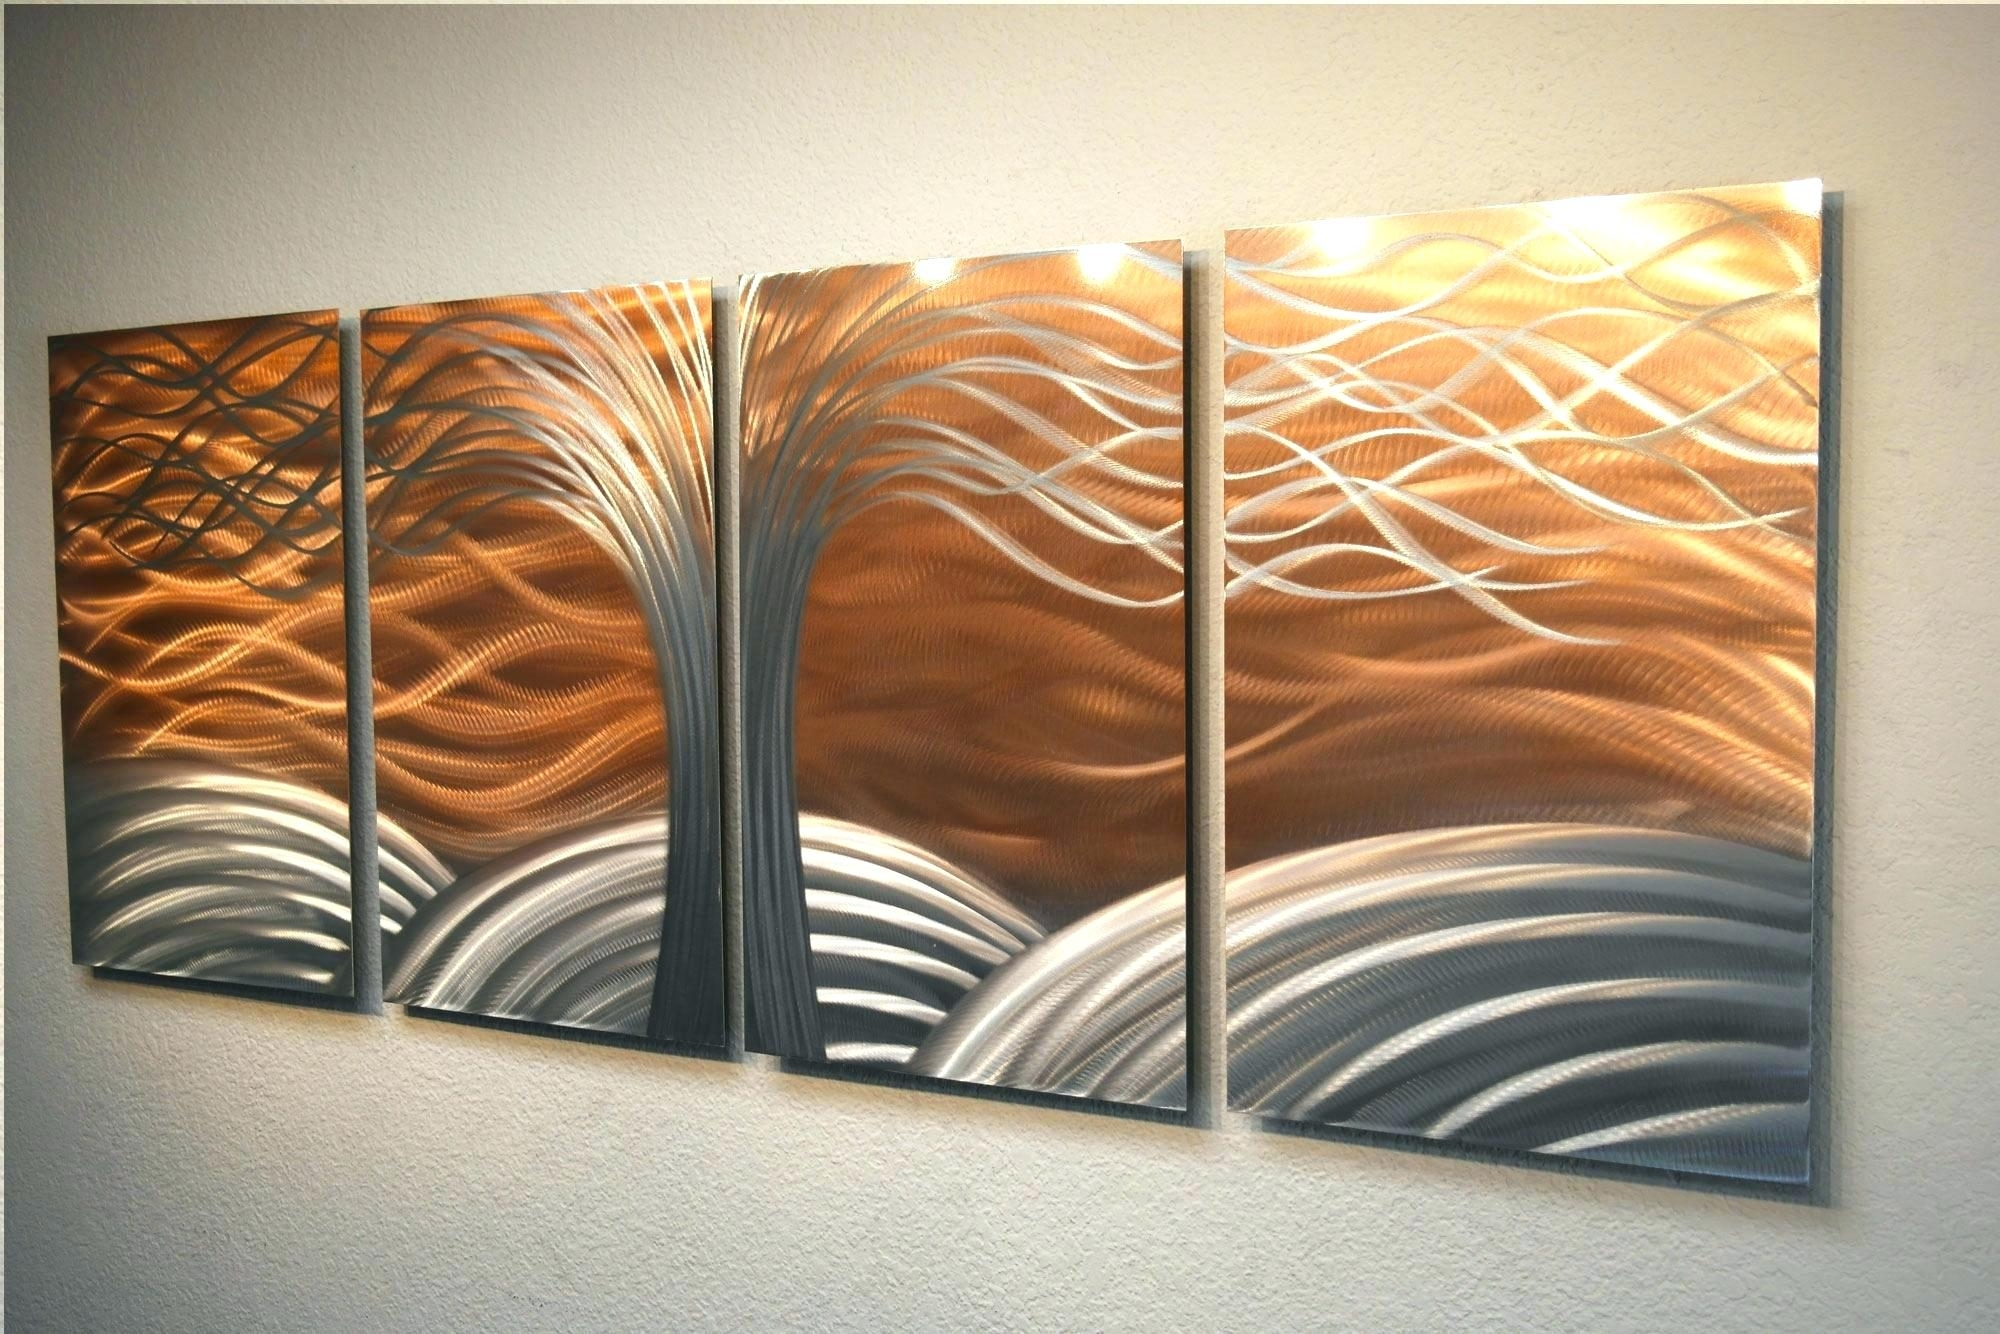 Wall Arts ~ Modern Metal Wall Art Australia Modern Metal Wall Art Intended For Newest Abstract Metal Wall Art Australia (View 18 of 20)